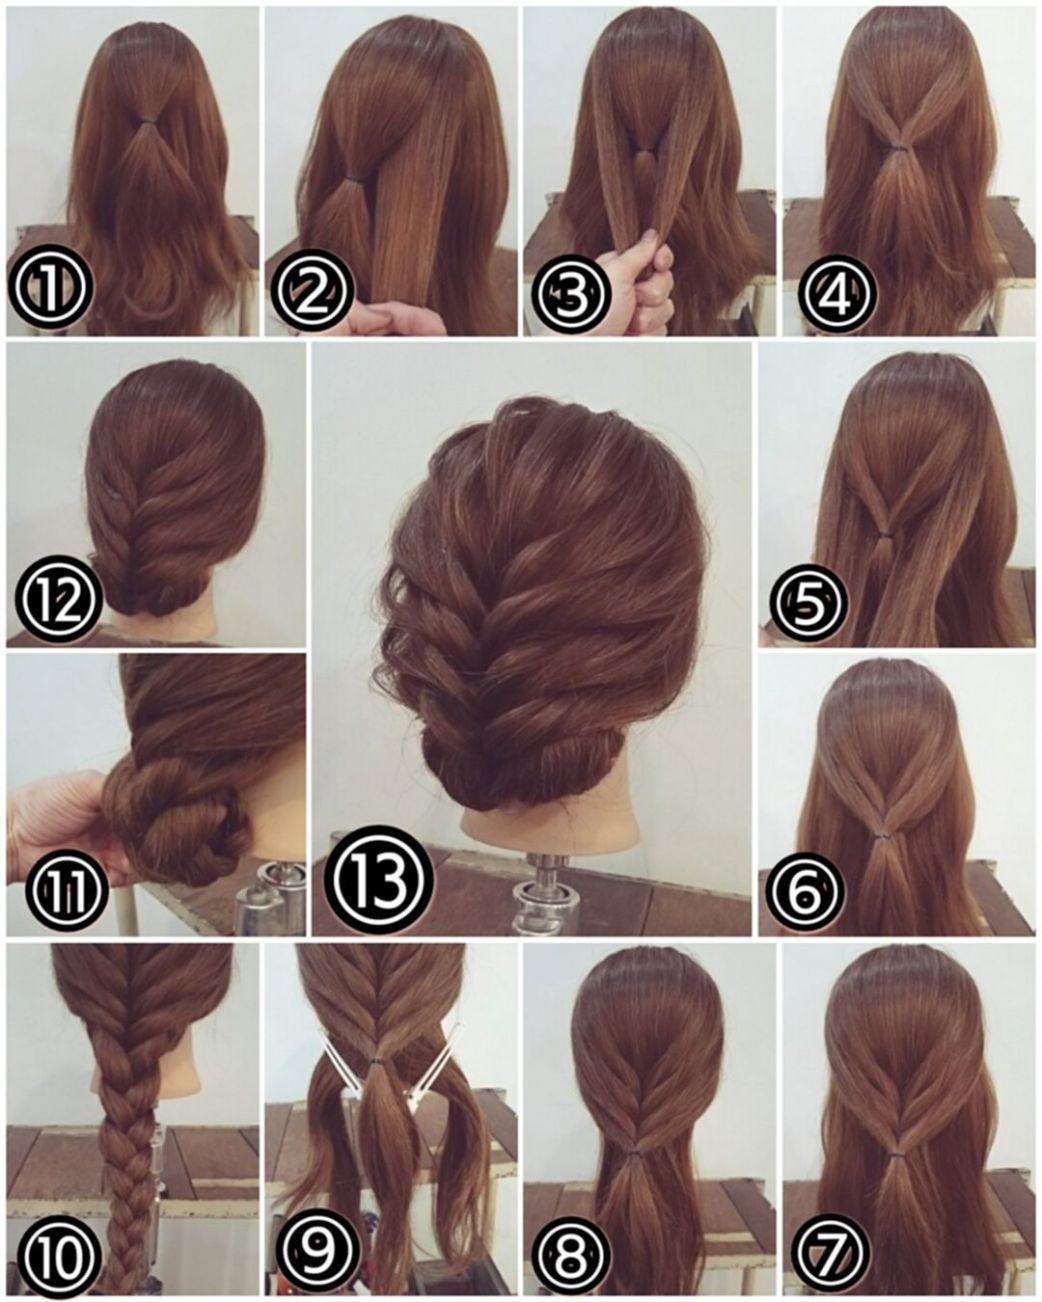 Excellent And Super Easy Updos For Long Hair Inspirations 423 Party Hairstyles For Long Hair Long Hair Styles Long Hair Tutorial